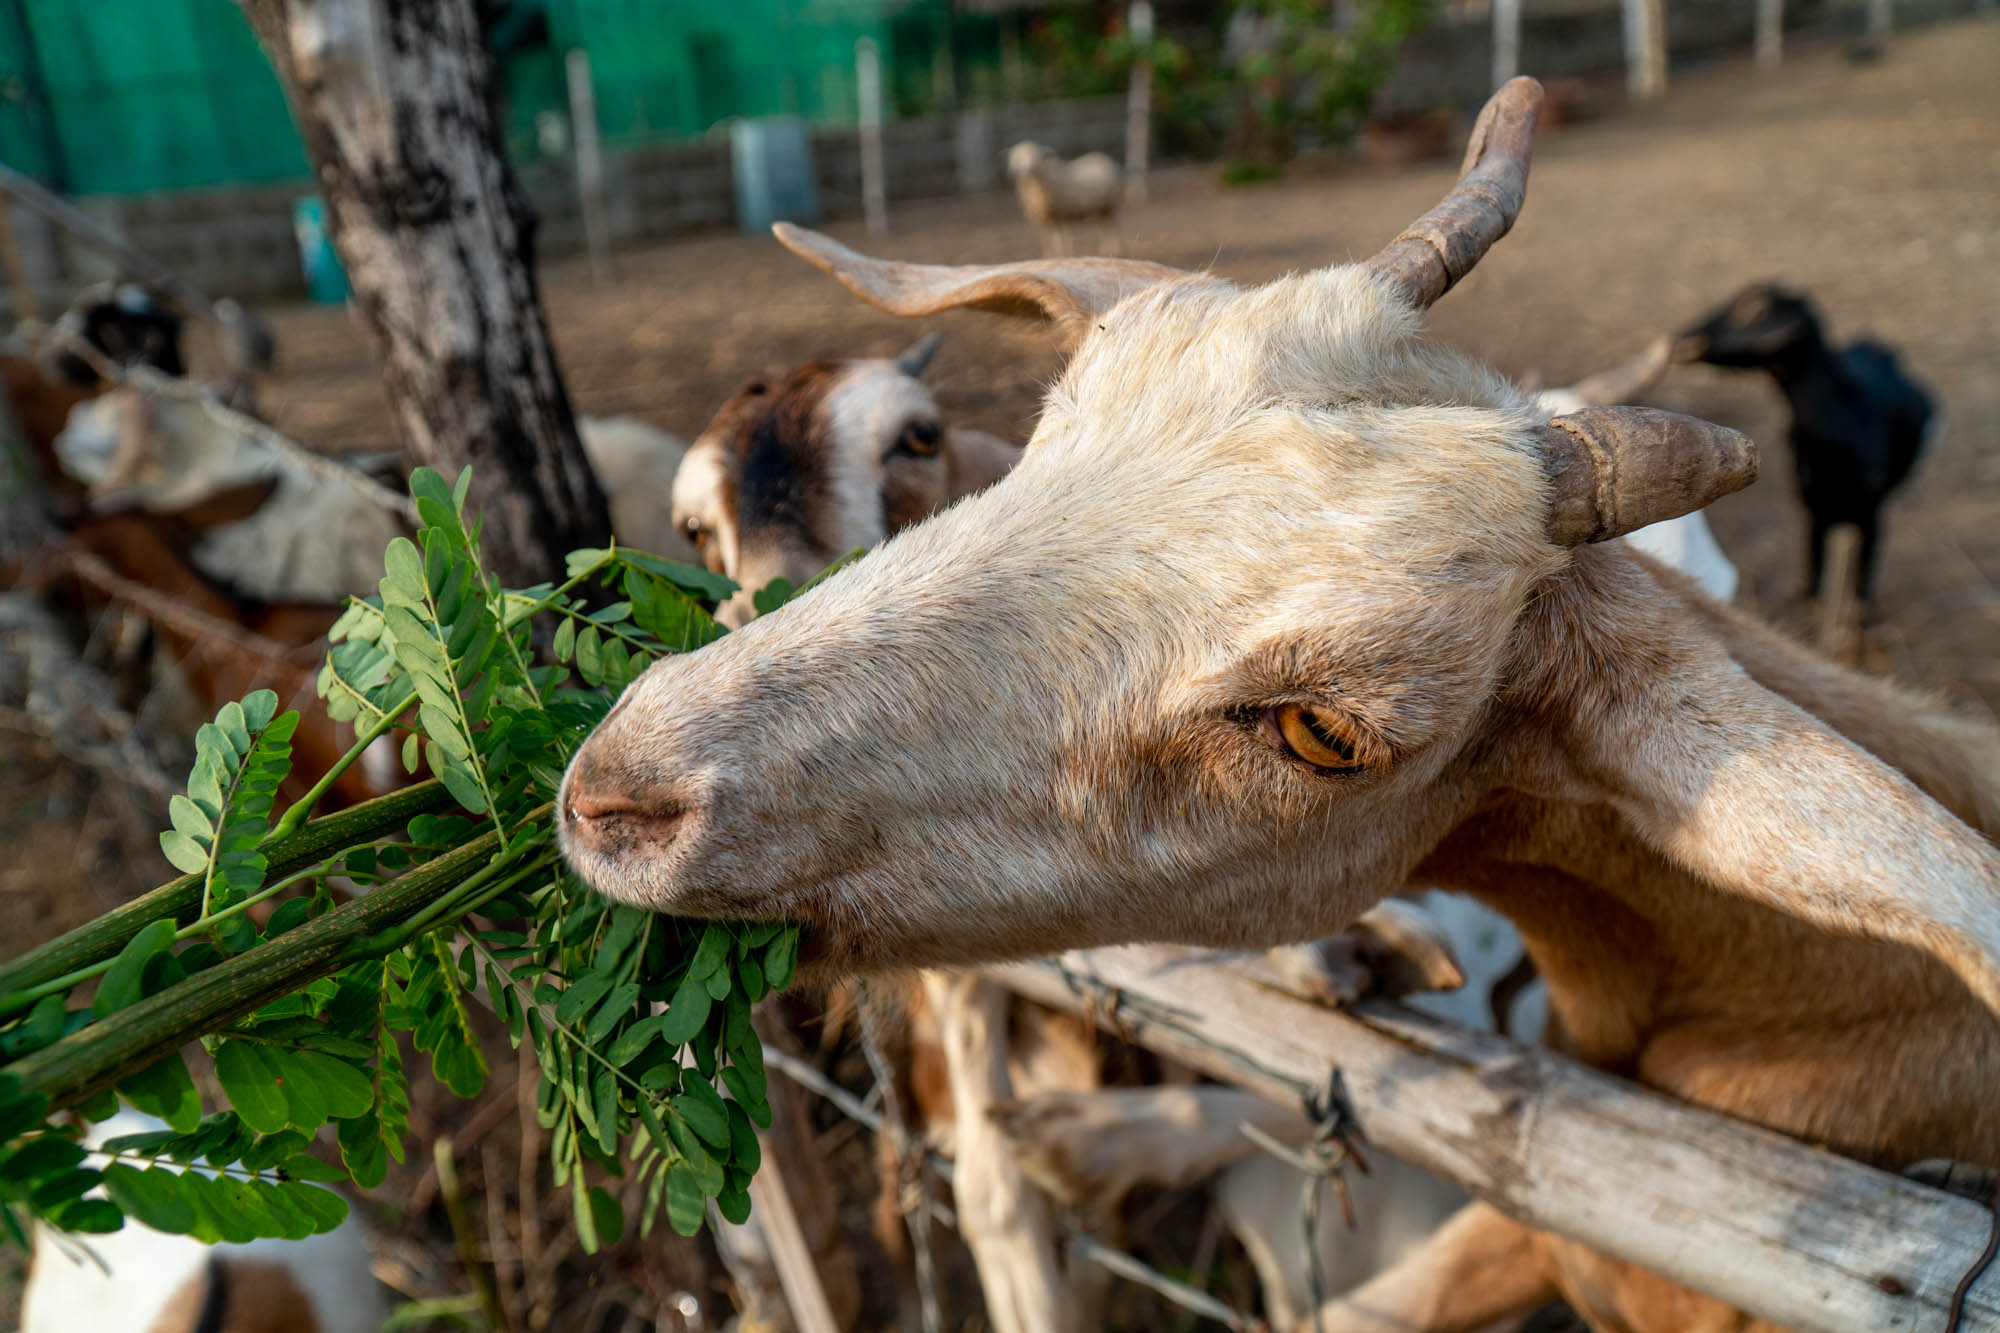 Try to get the goats to eat from the top part of the fence instead of them poking their heads through the gaps. The gaps have spiky wires so the animals could get hurt.